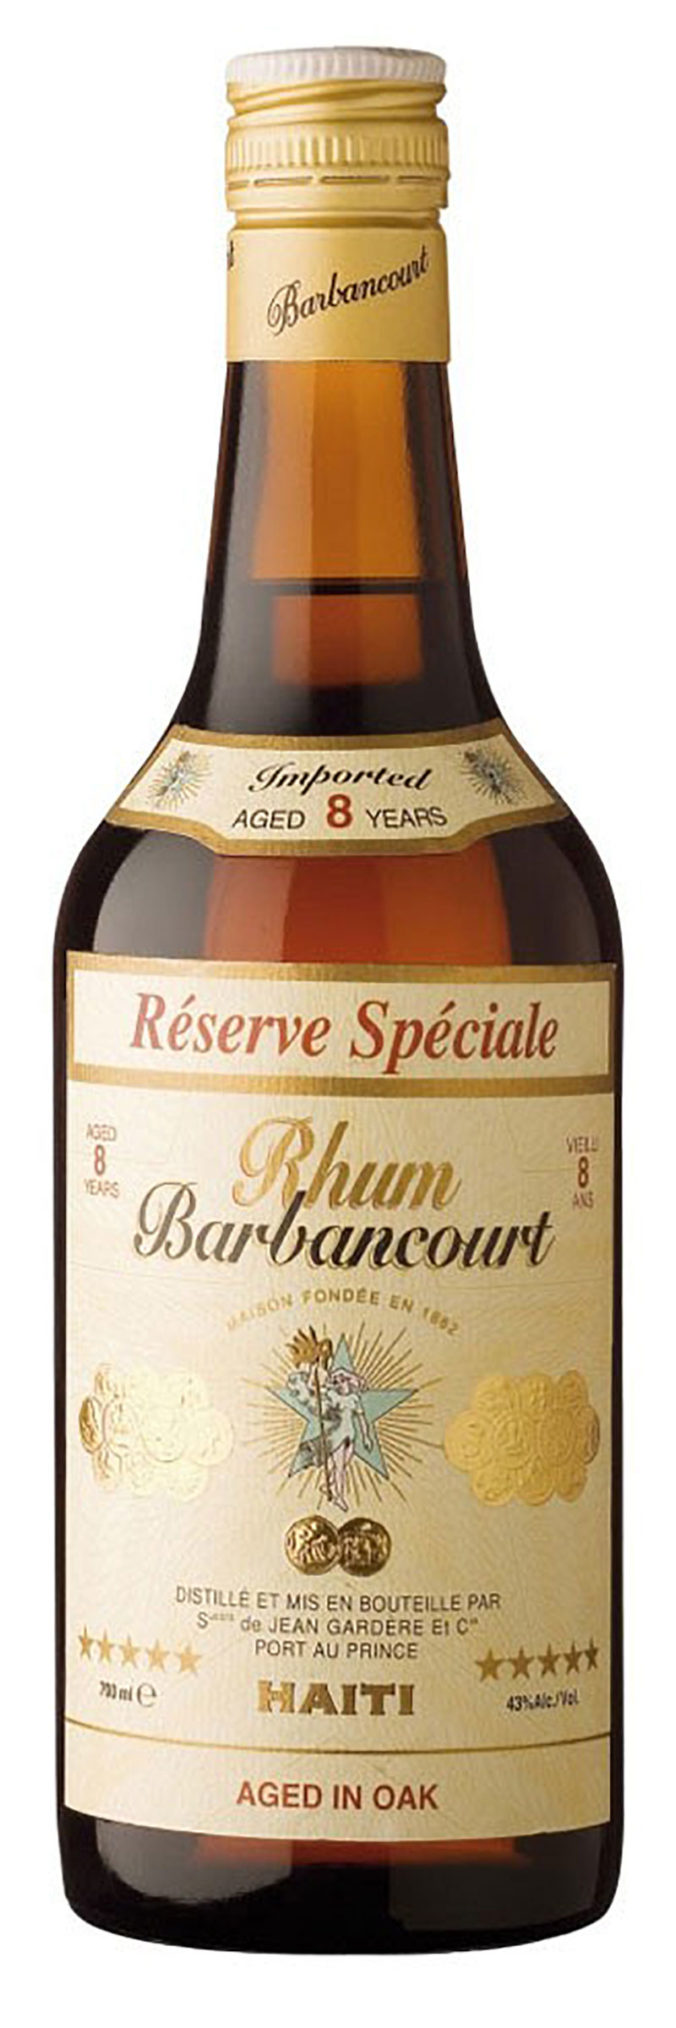 Barbancourt 5 Star eight year old aged rhum from Haiti